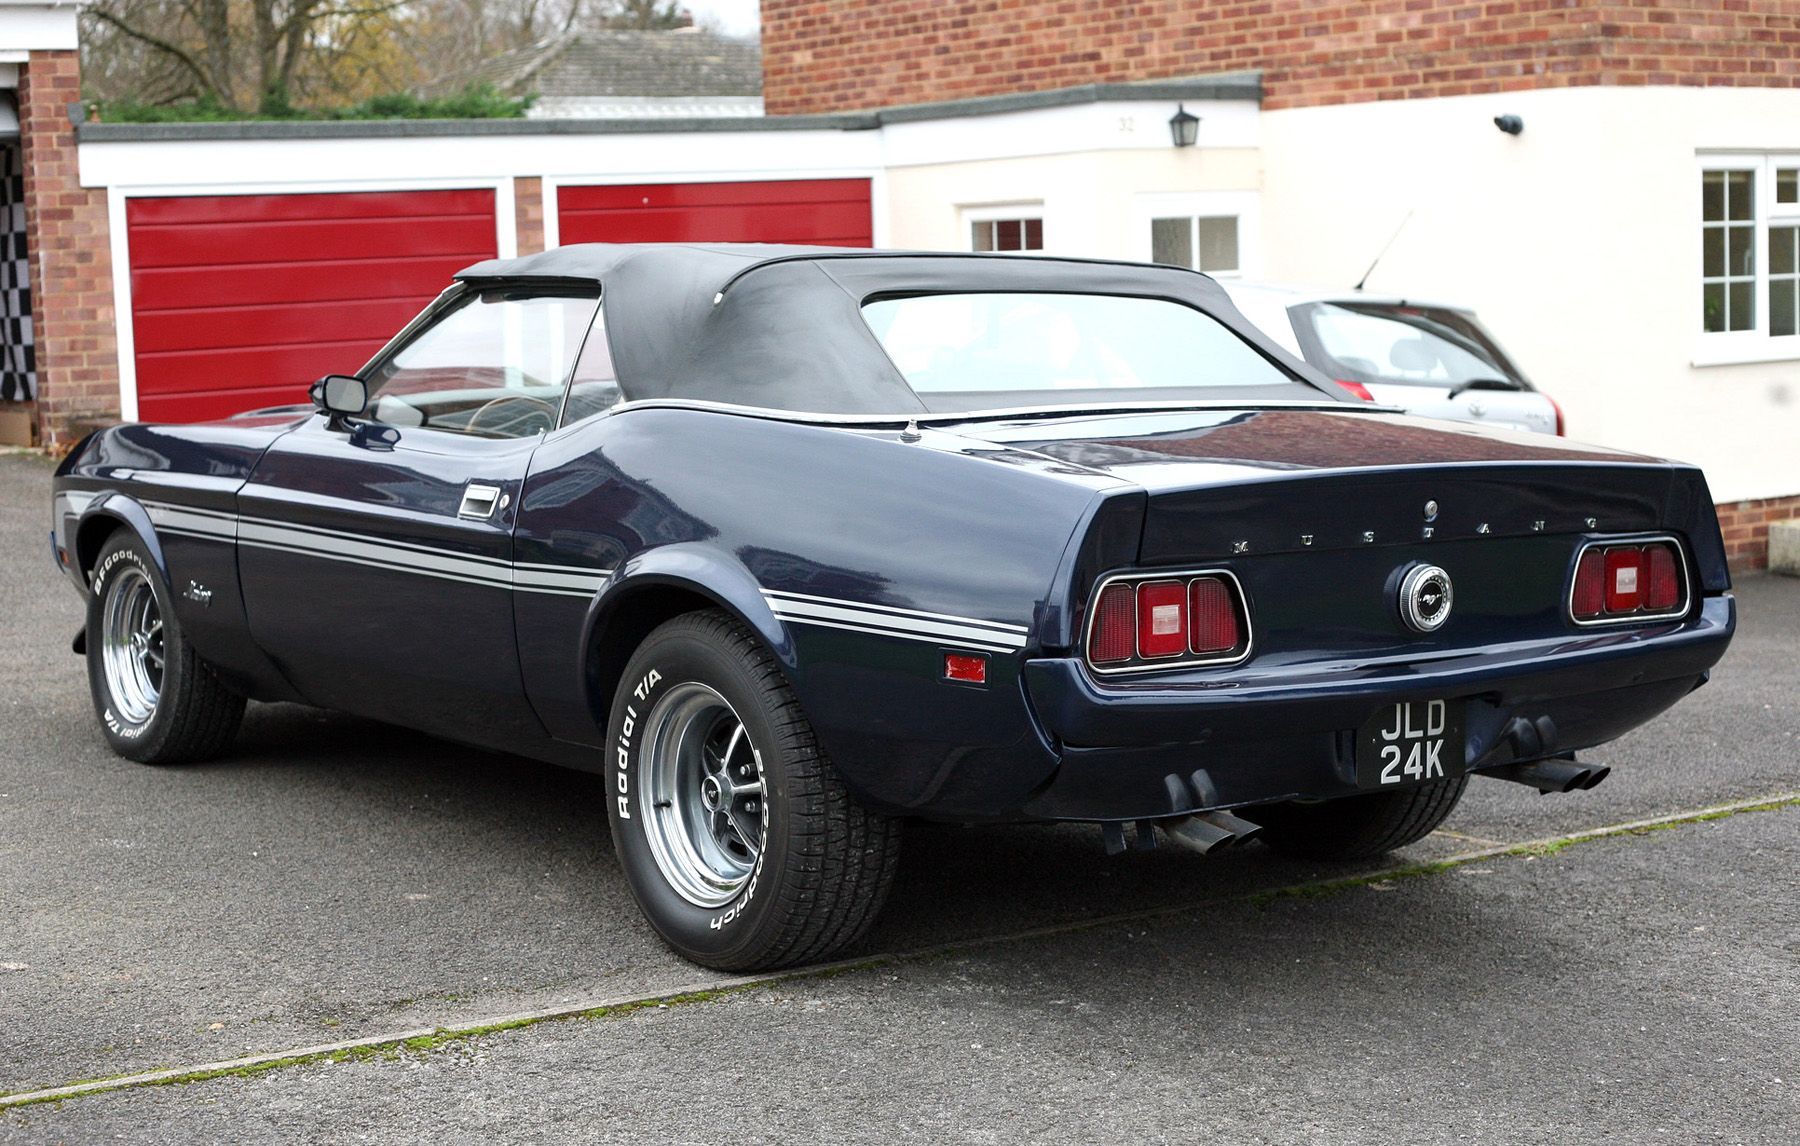 1972_Mustang_Rear.jpg (1800×1146) | Muscle cars, Toyota supra, Cool cars